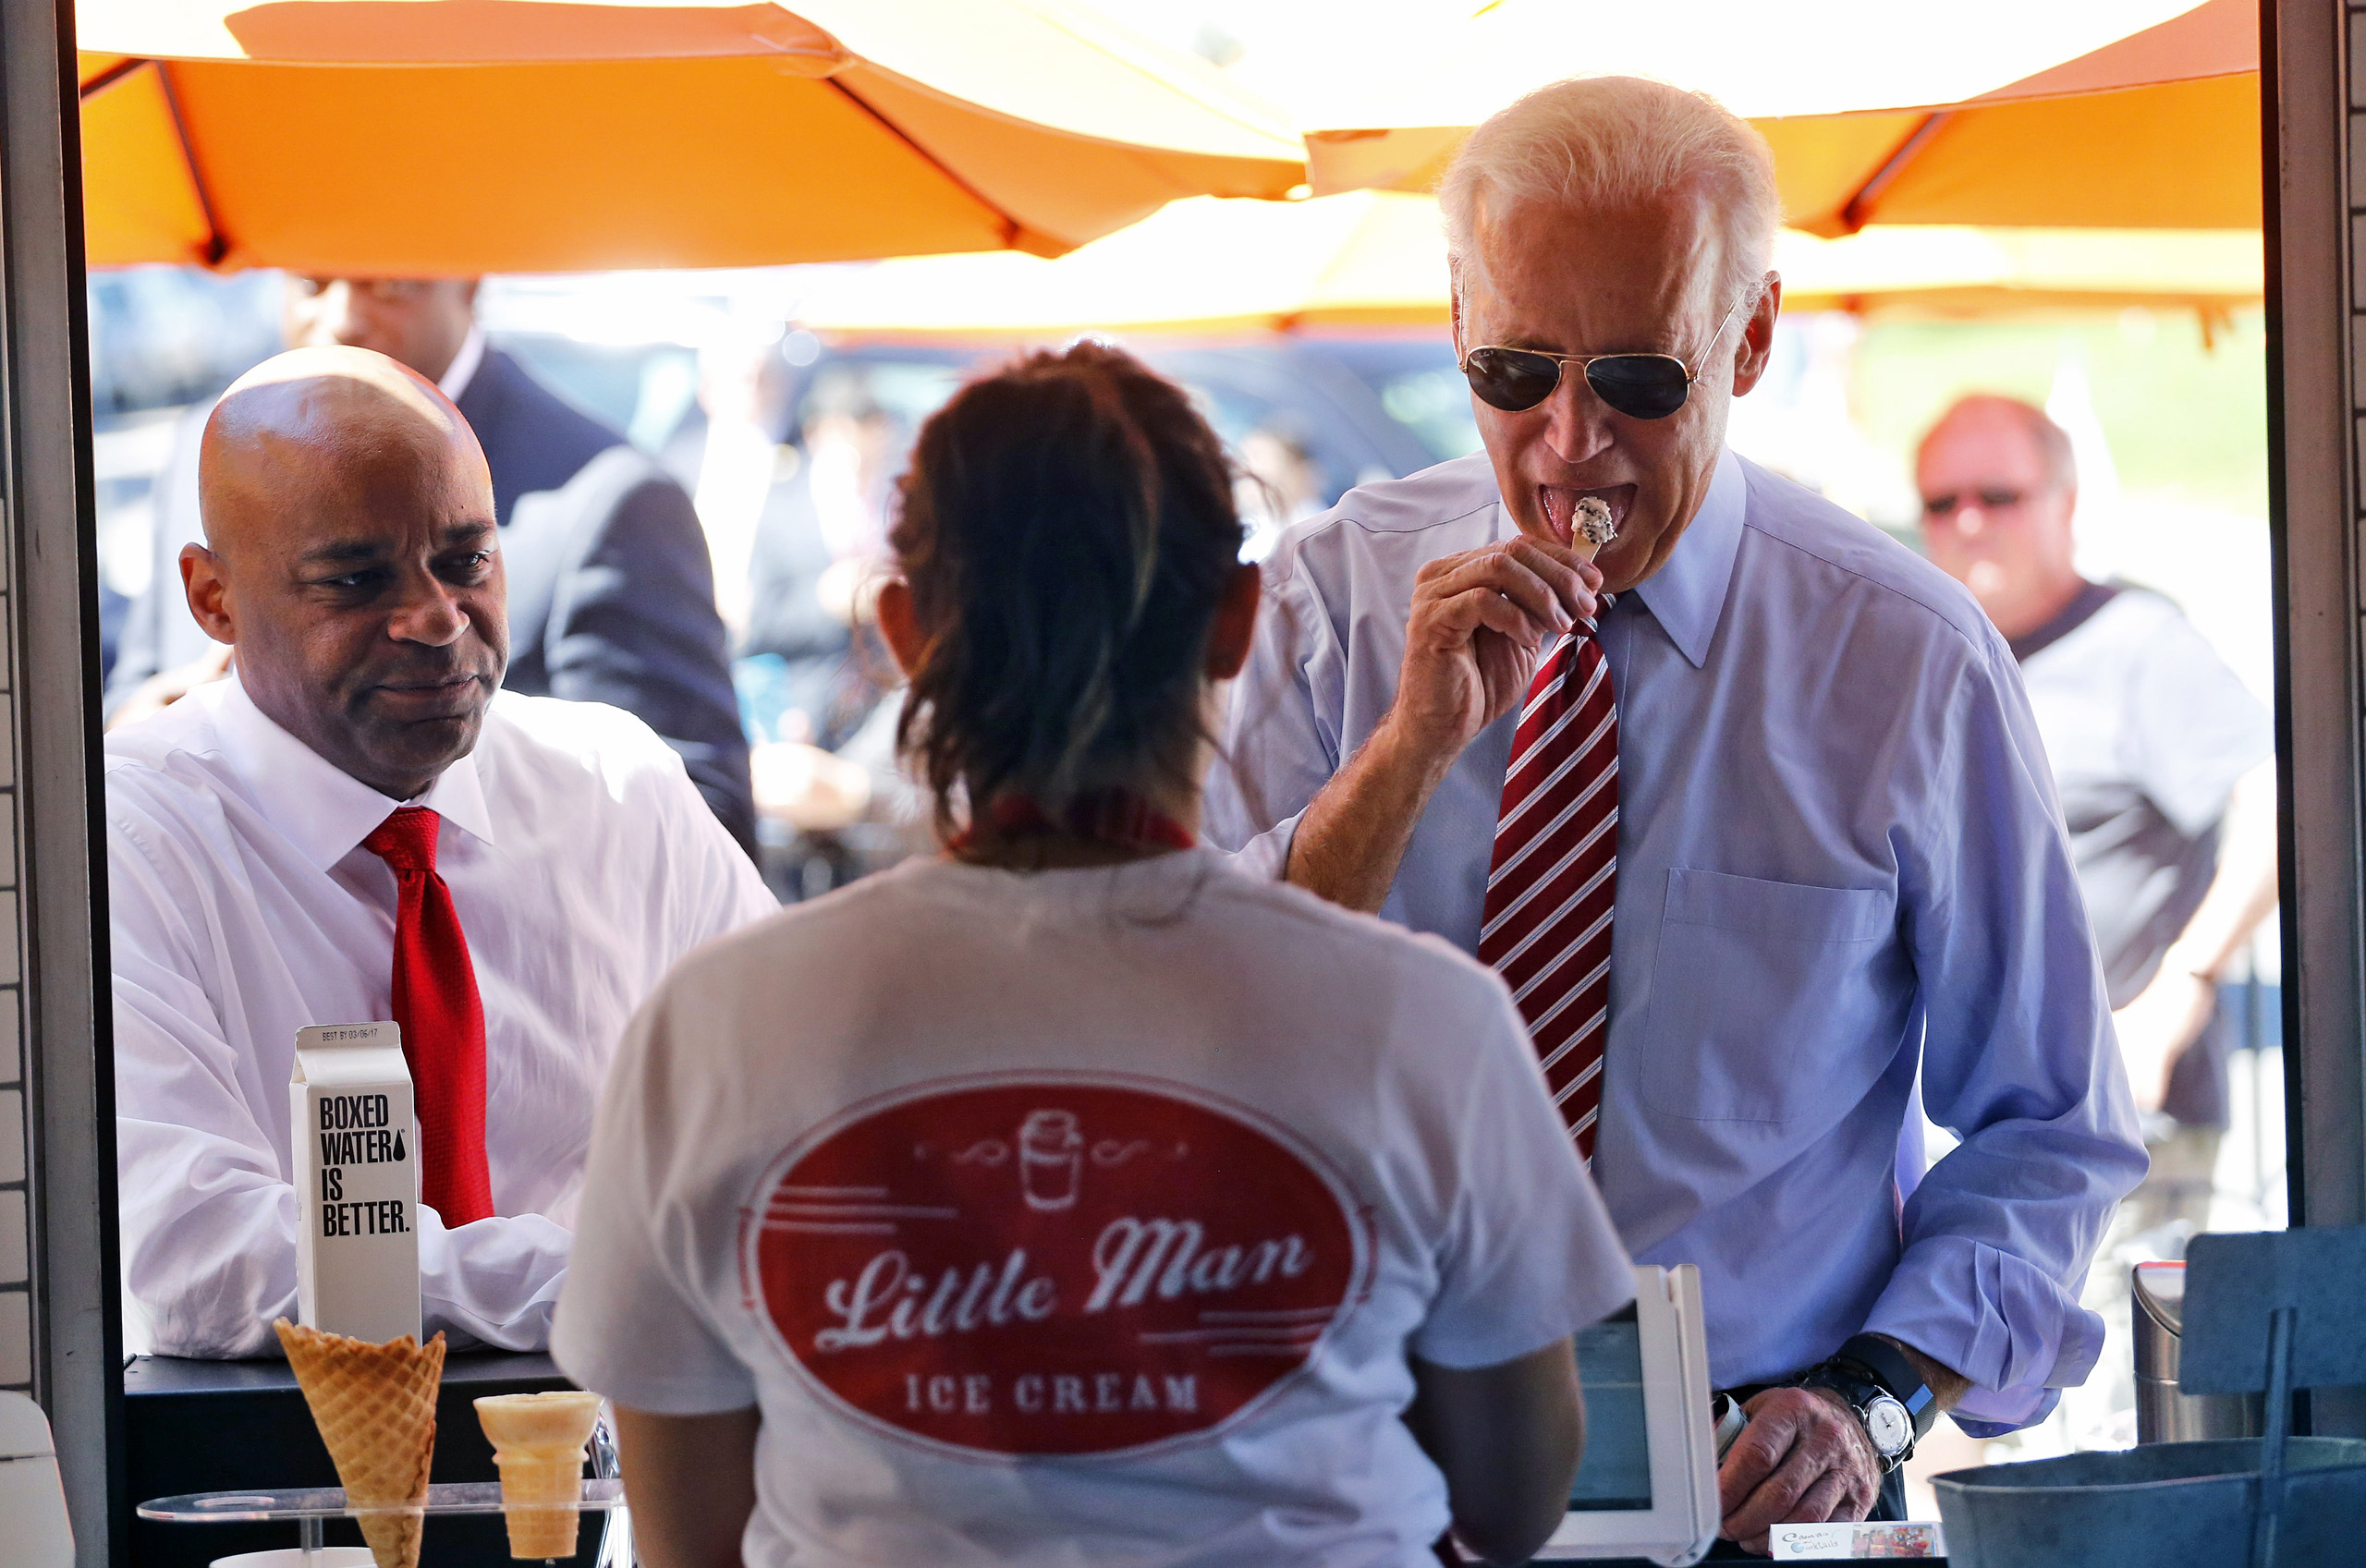 Vice President Joe Biden tastes different ice creams during a visit to Little Man Ice Cream, in Denver on July 21, 2015.